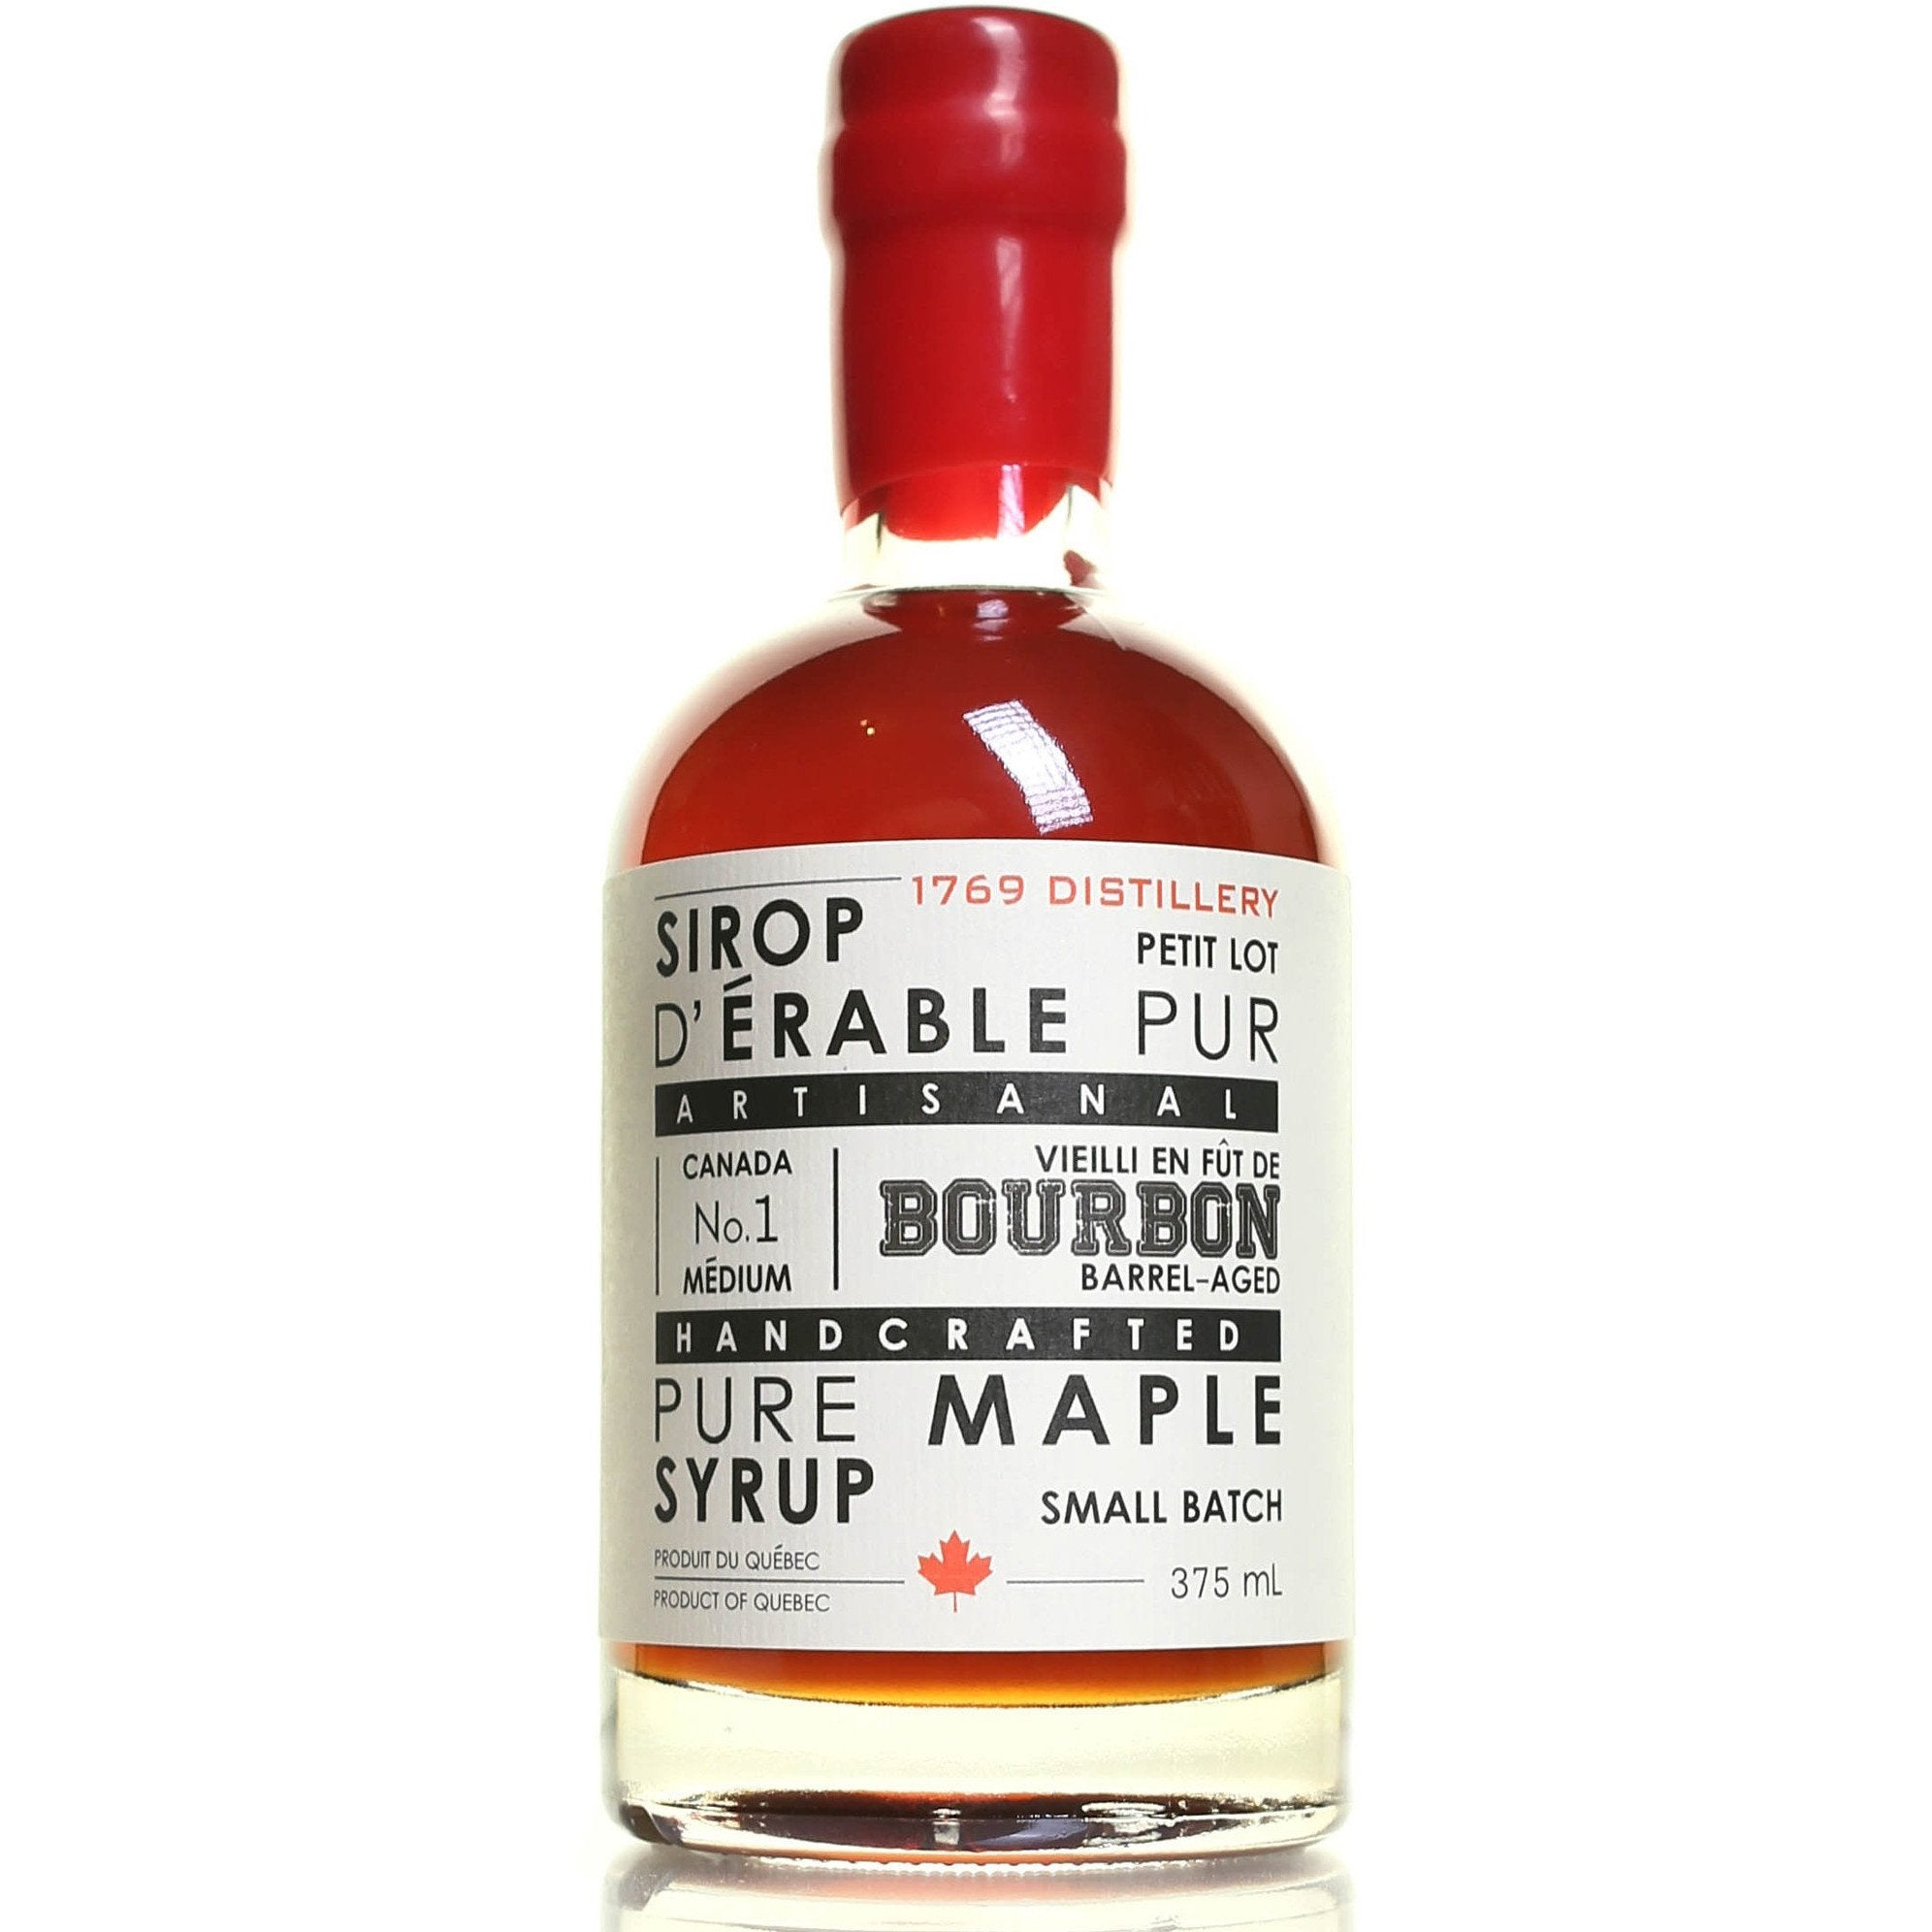 09fdd0e47ed 1769 Distillery Syrup Bourbon Barrel Aged Maple Syrup - Alambika Montreal  Canada